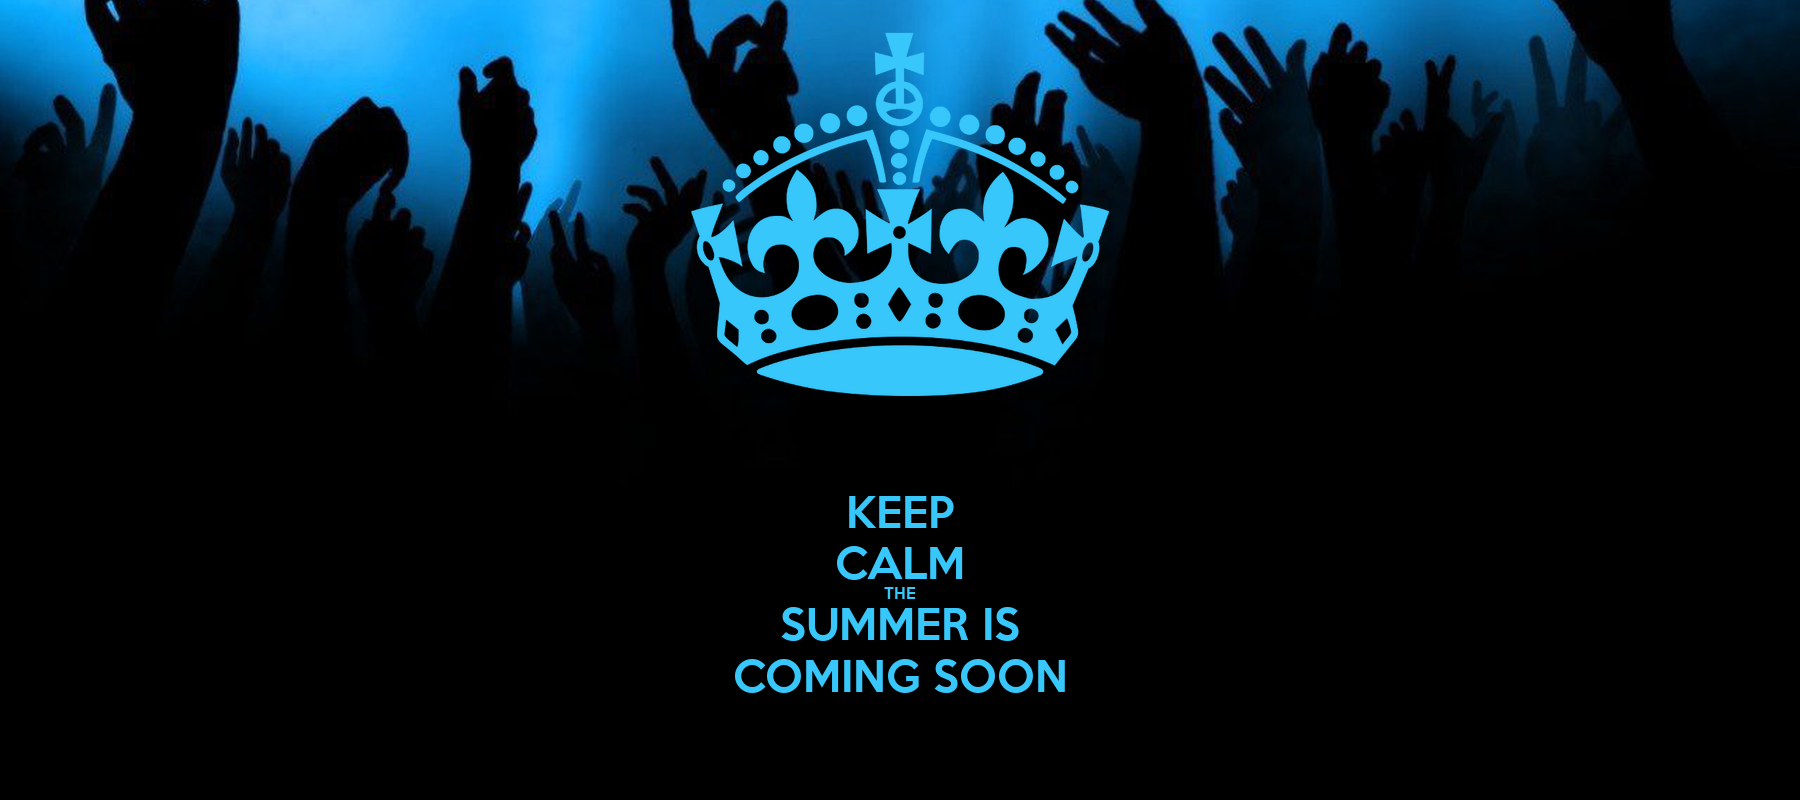 KEEP CALM THE SUMMER IS COMING SOON Poster  Nadia  Keep Calm-o-Matic